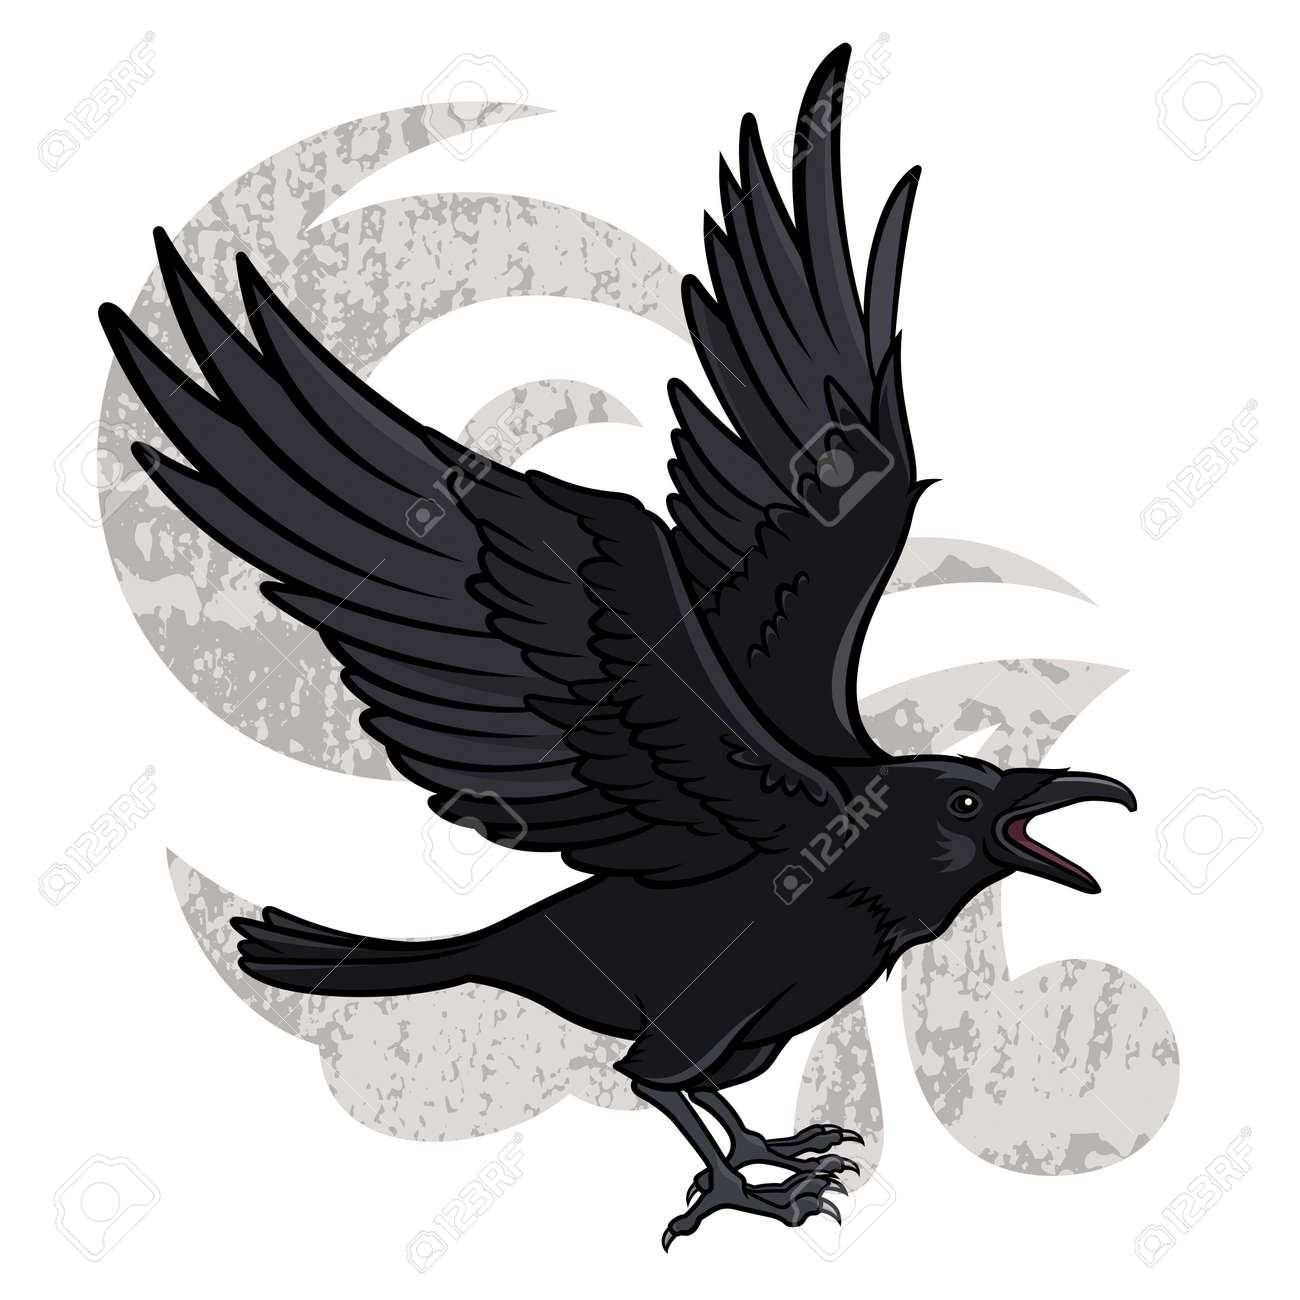 617 raven vector stock vector illustration and royalty free raven